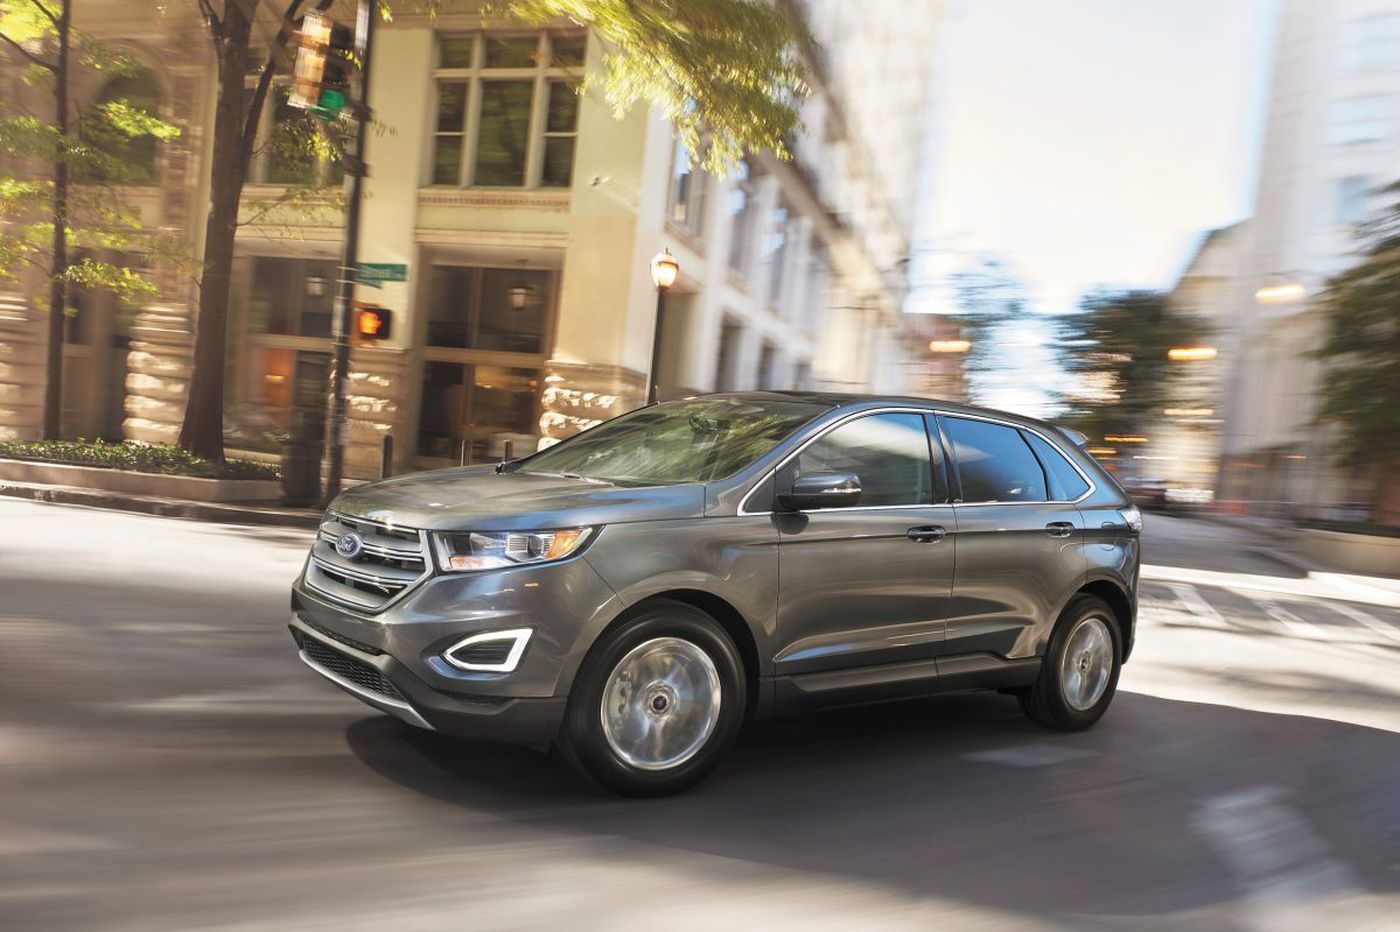 Ford Edge is a spacious, drivable crossover